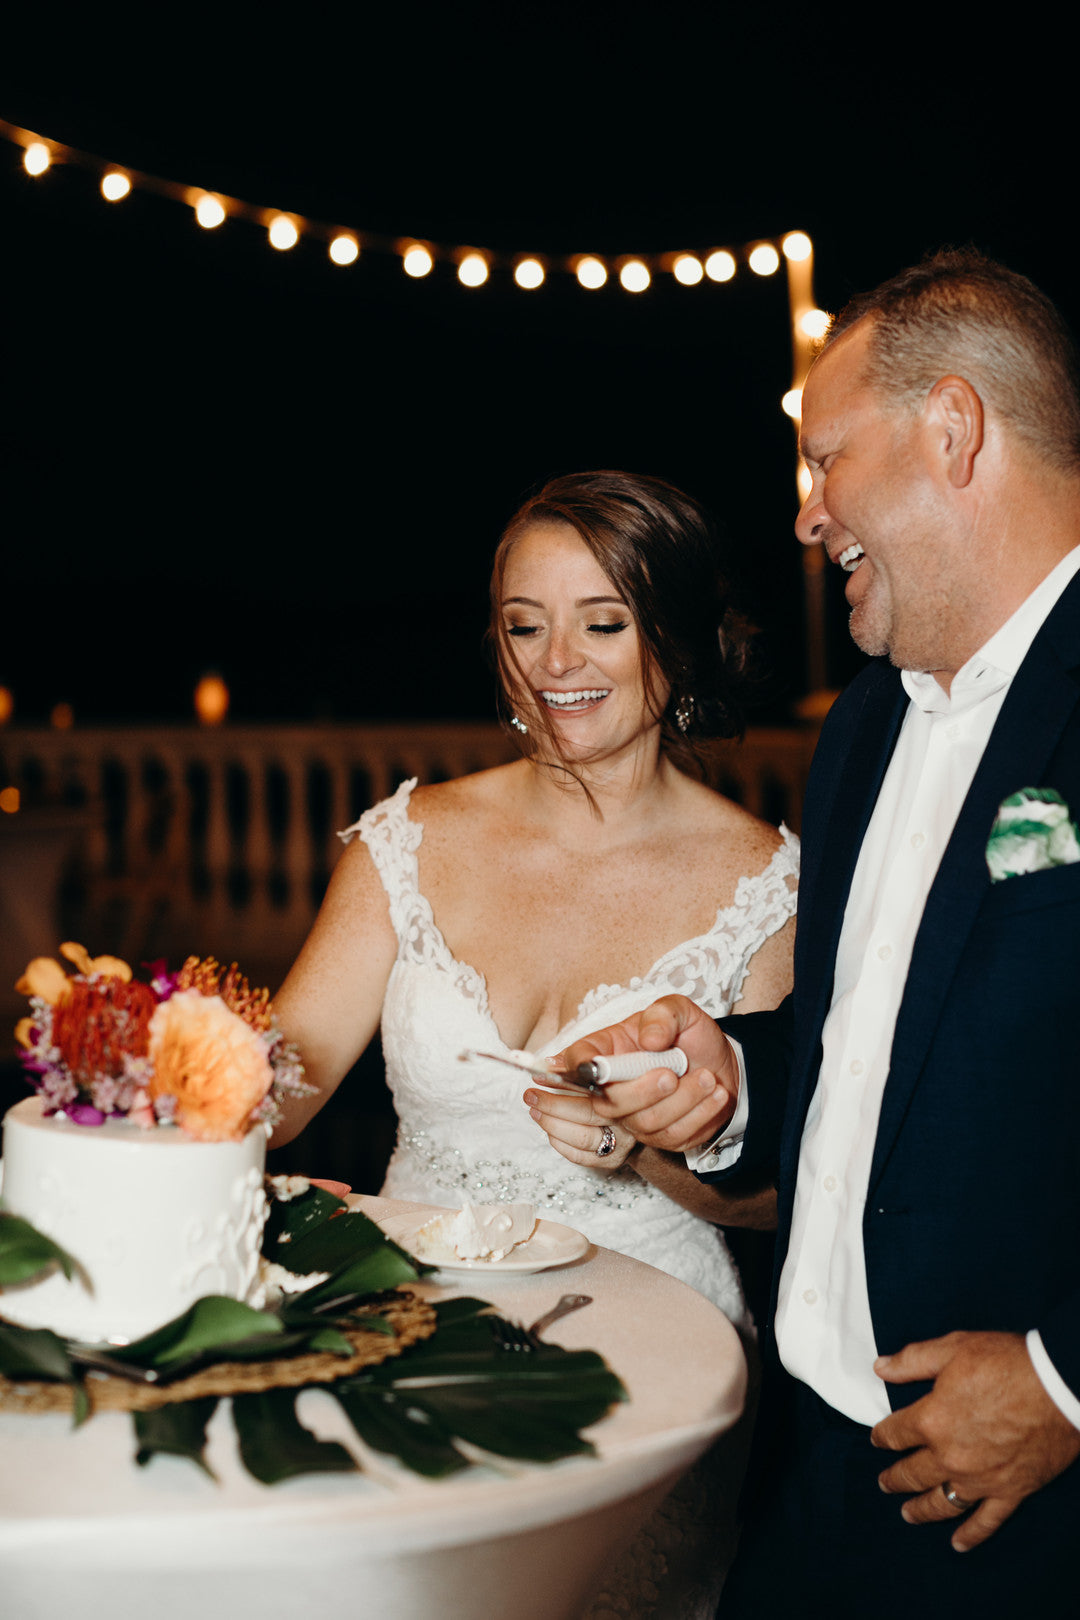 Cake Cutting | A Dreamy Destination Wedding at St. Thomas | Kate Aspen